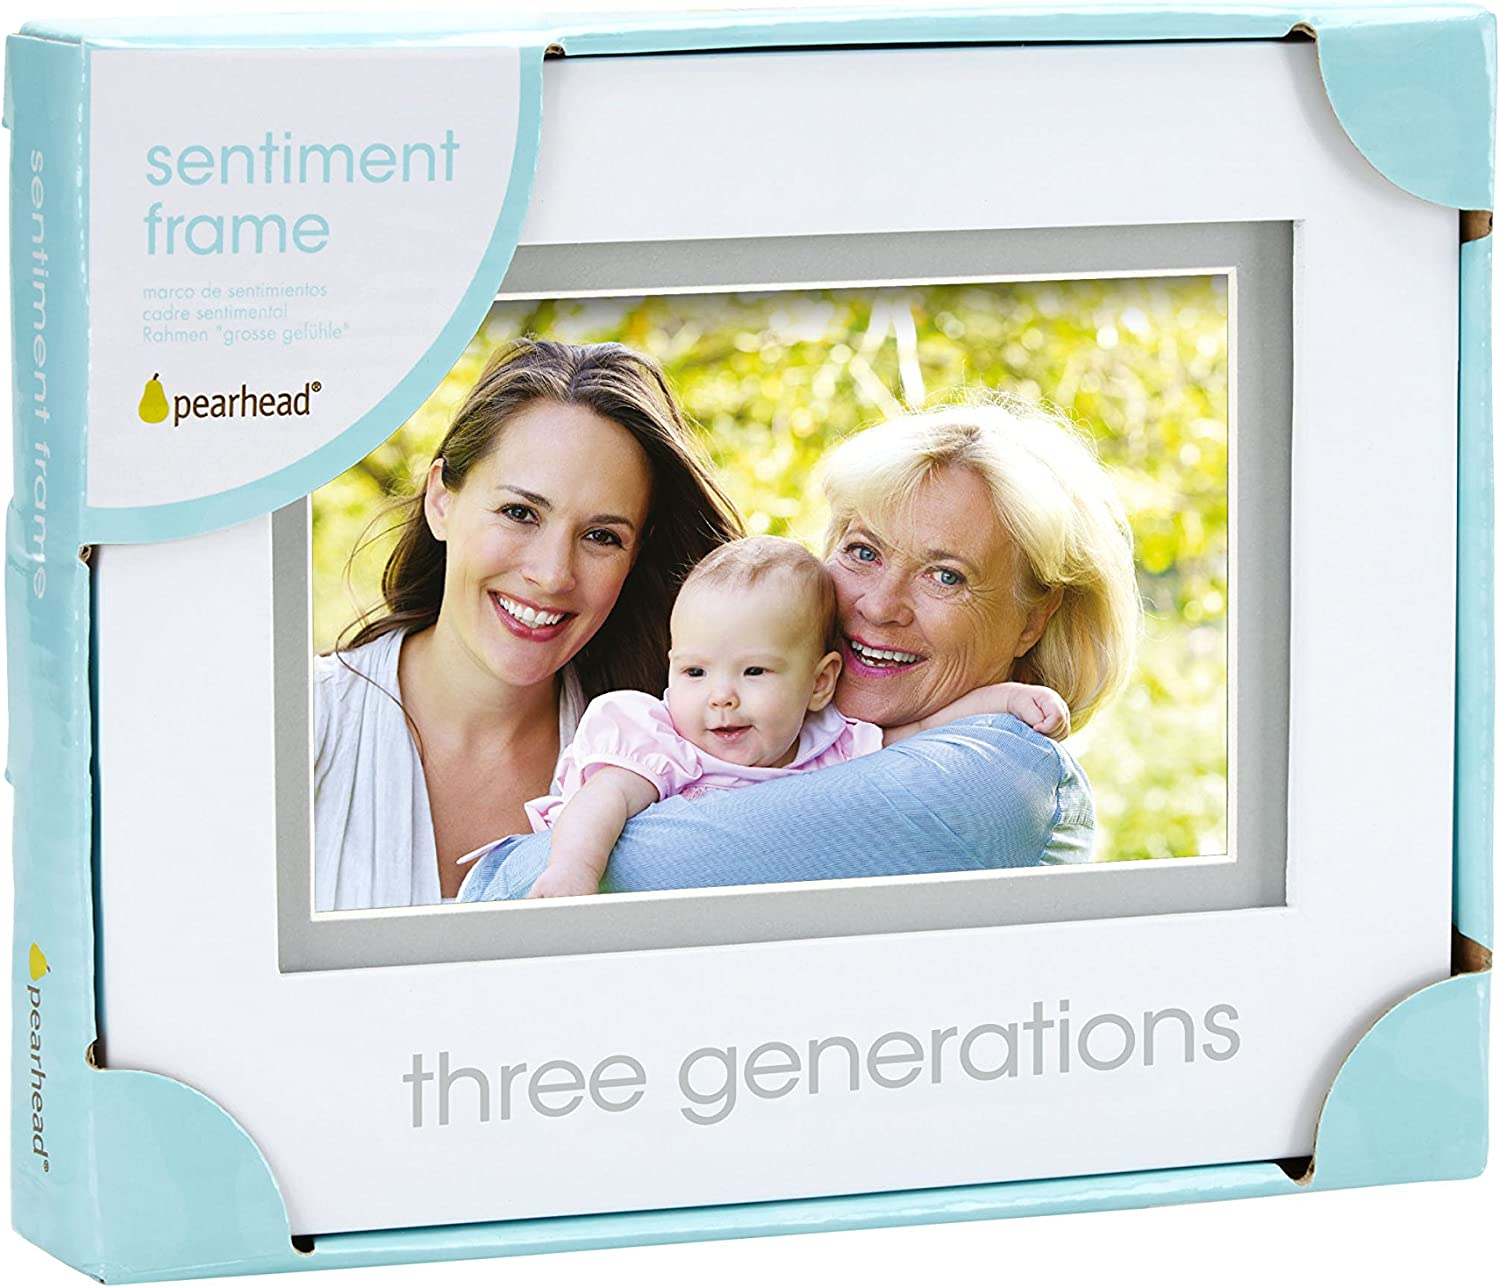 Gray Pearhead Grandparents Sonogram Block Keepsake Box Grandparents To Be Gift Perfect Way To Announce Your Pregnancy